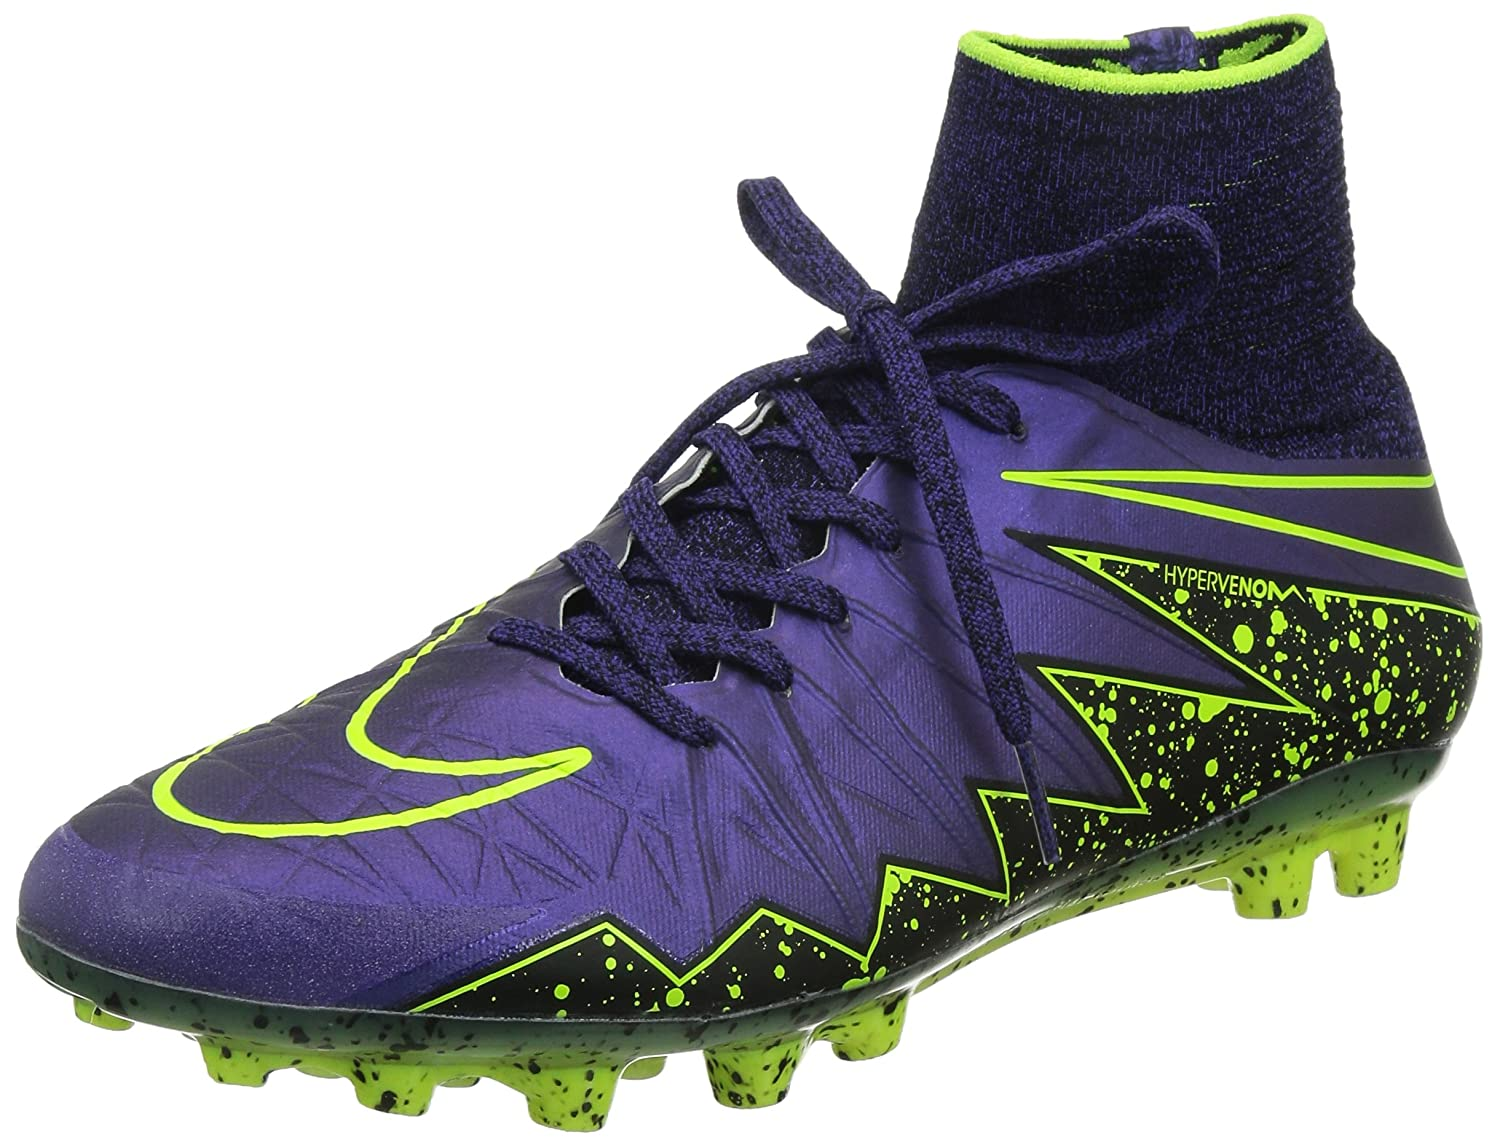 new concept c421a 0ce22 Amazon.com   Nike Hypervenom Phantom II Ag-R-Hyper Grape Black Hyper Grape    Soccer